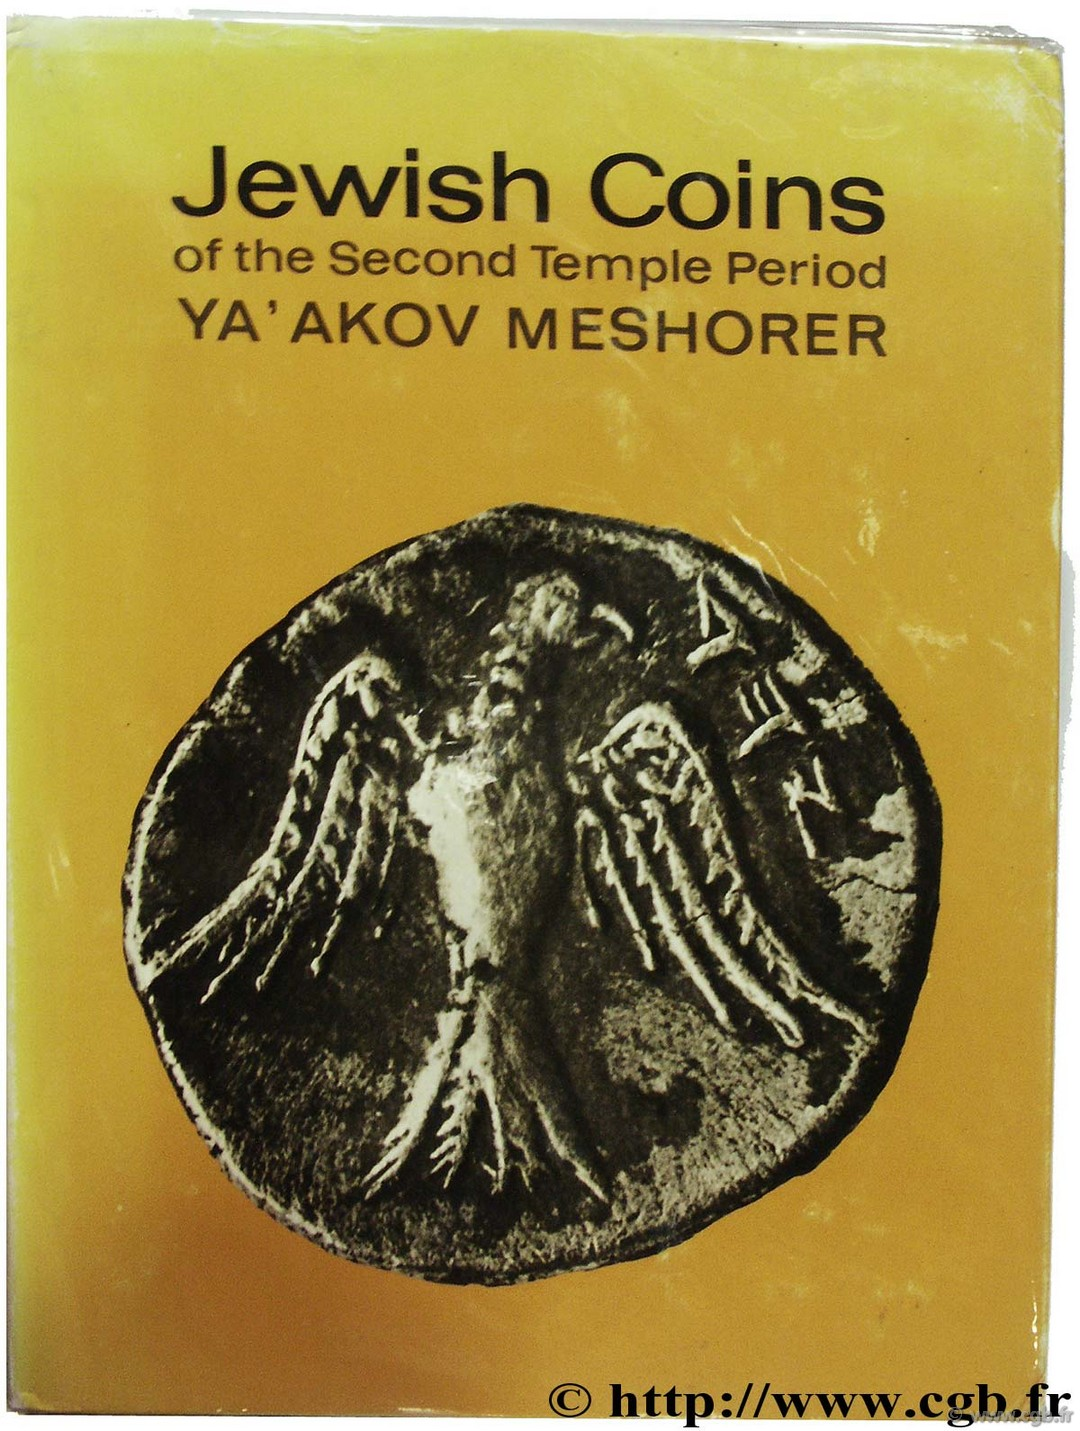 Jewish Coins of the Second Temple Period MESHORER Y.